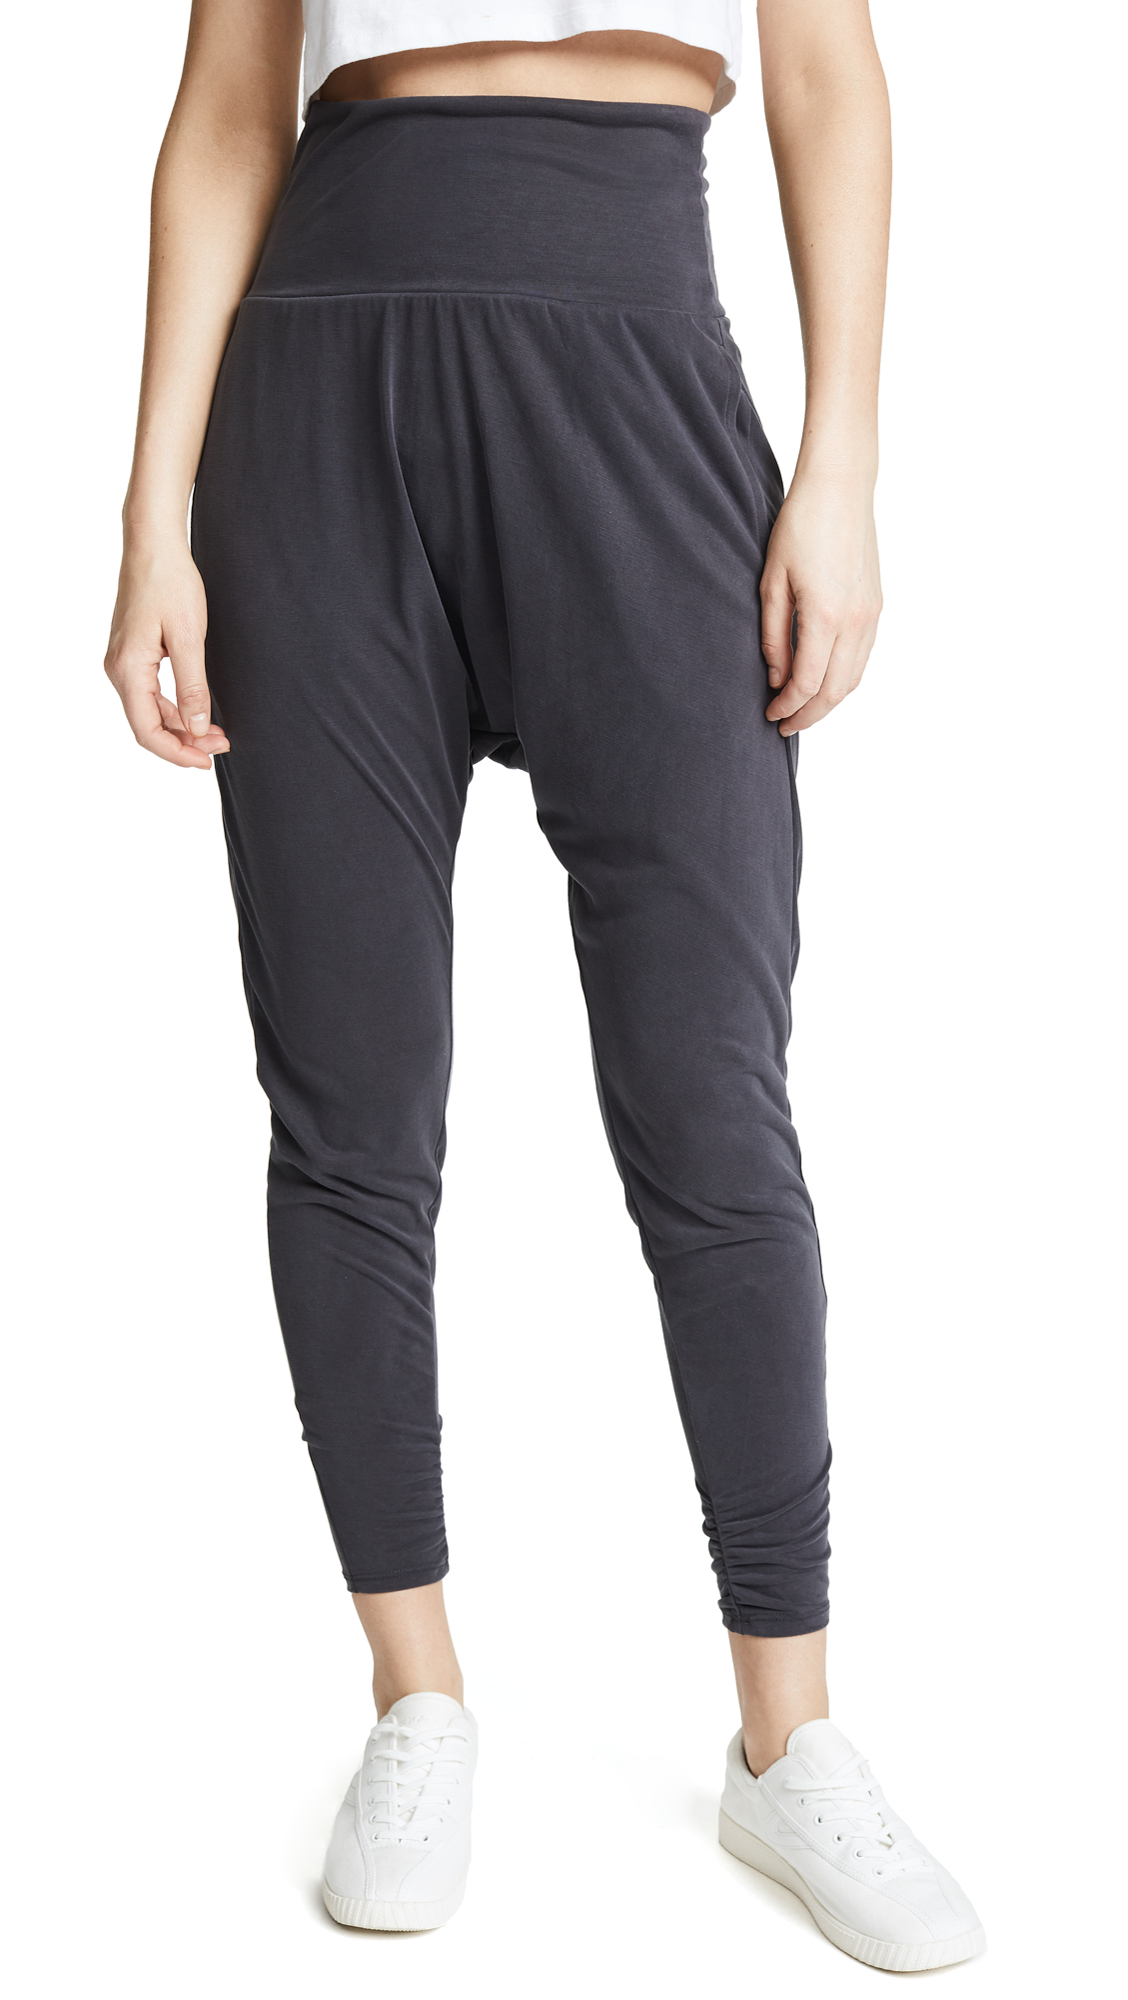 Free People Movement Echo Harem Pants - Black